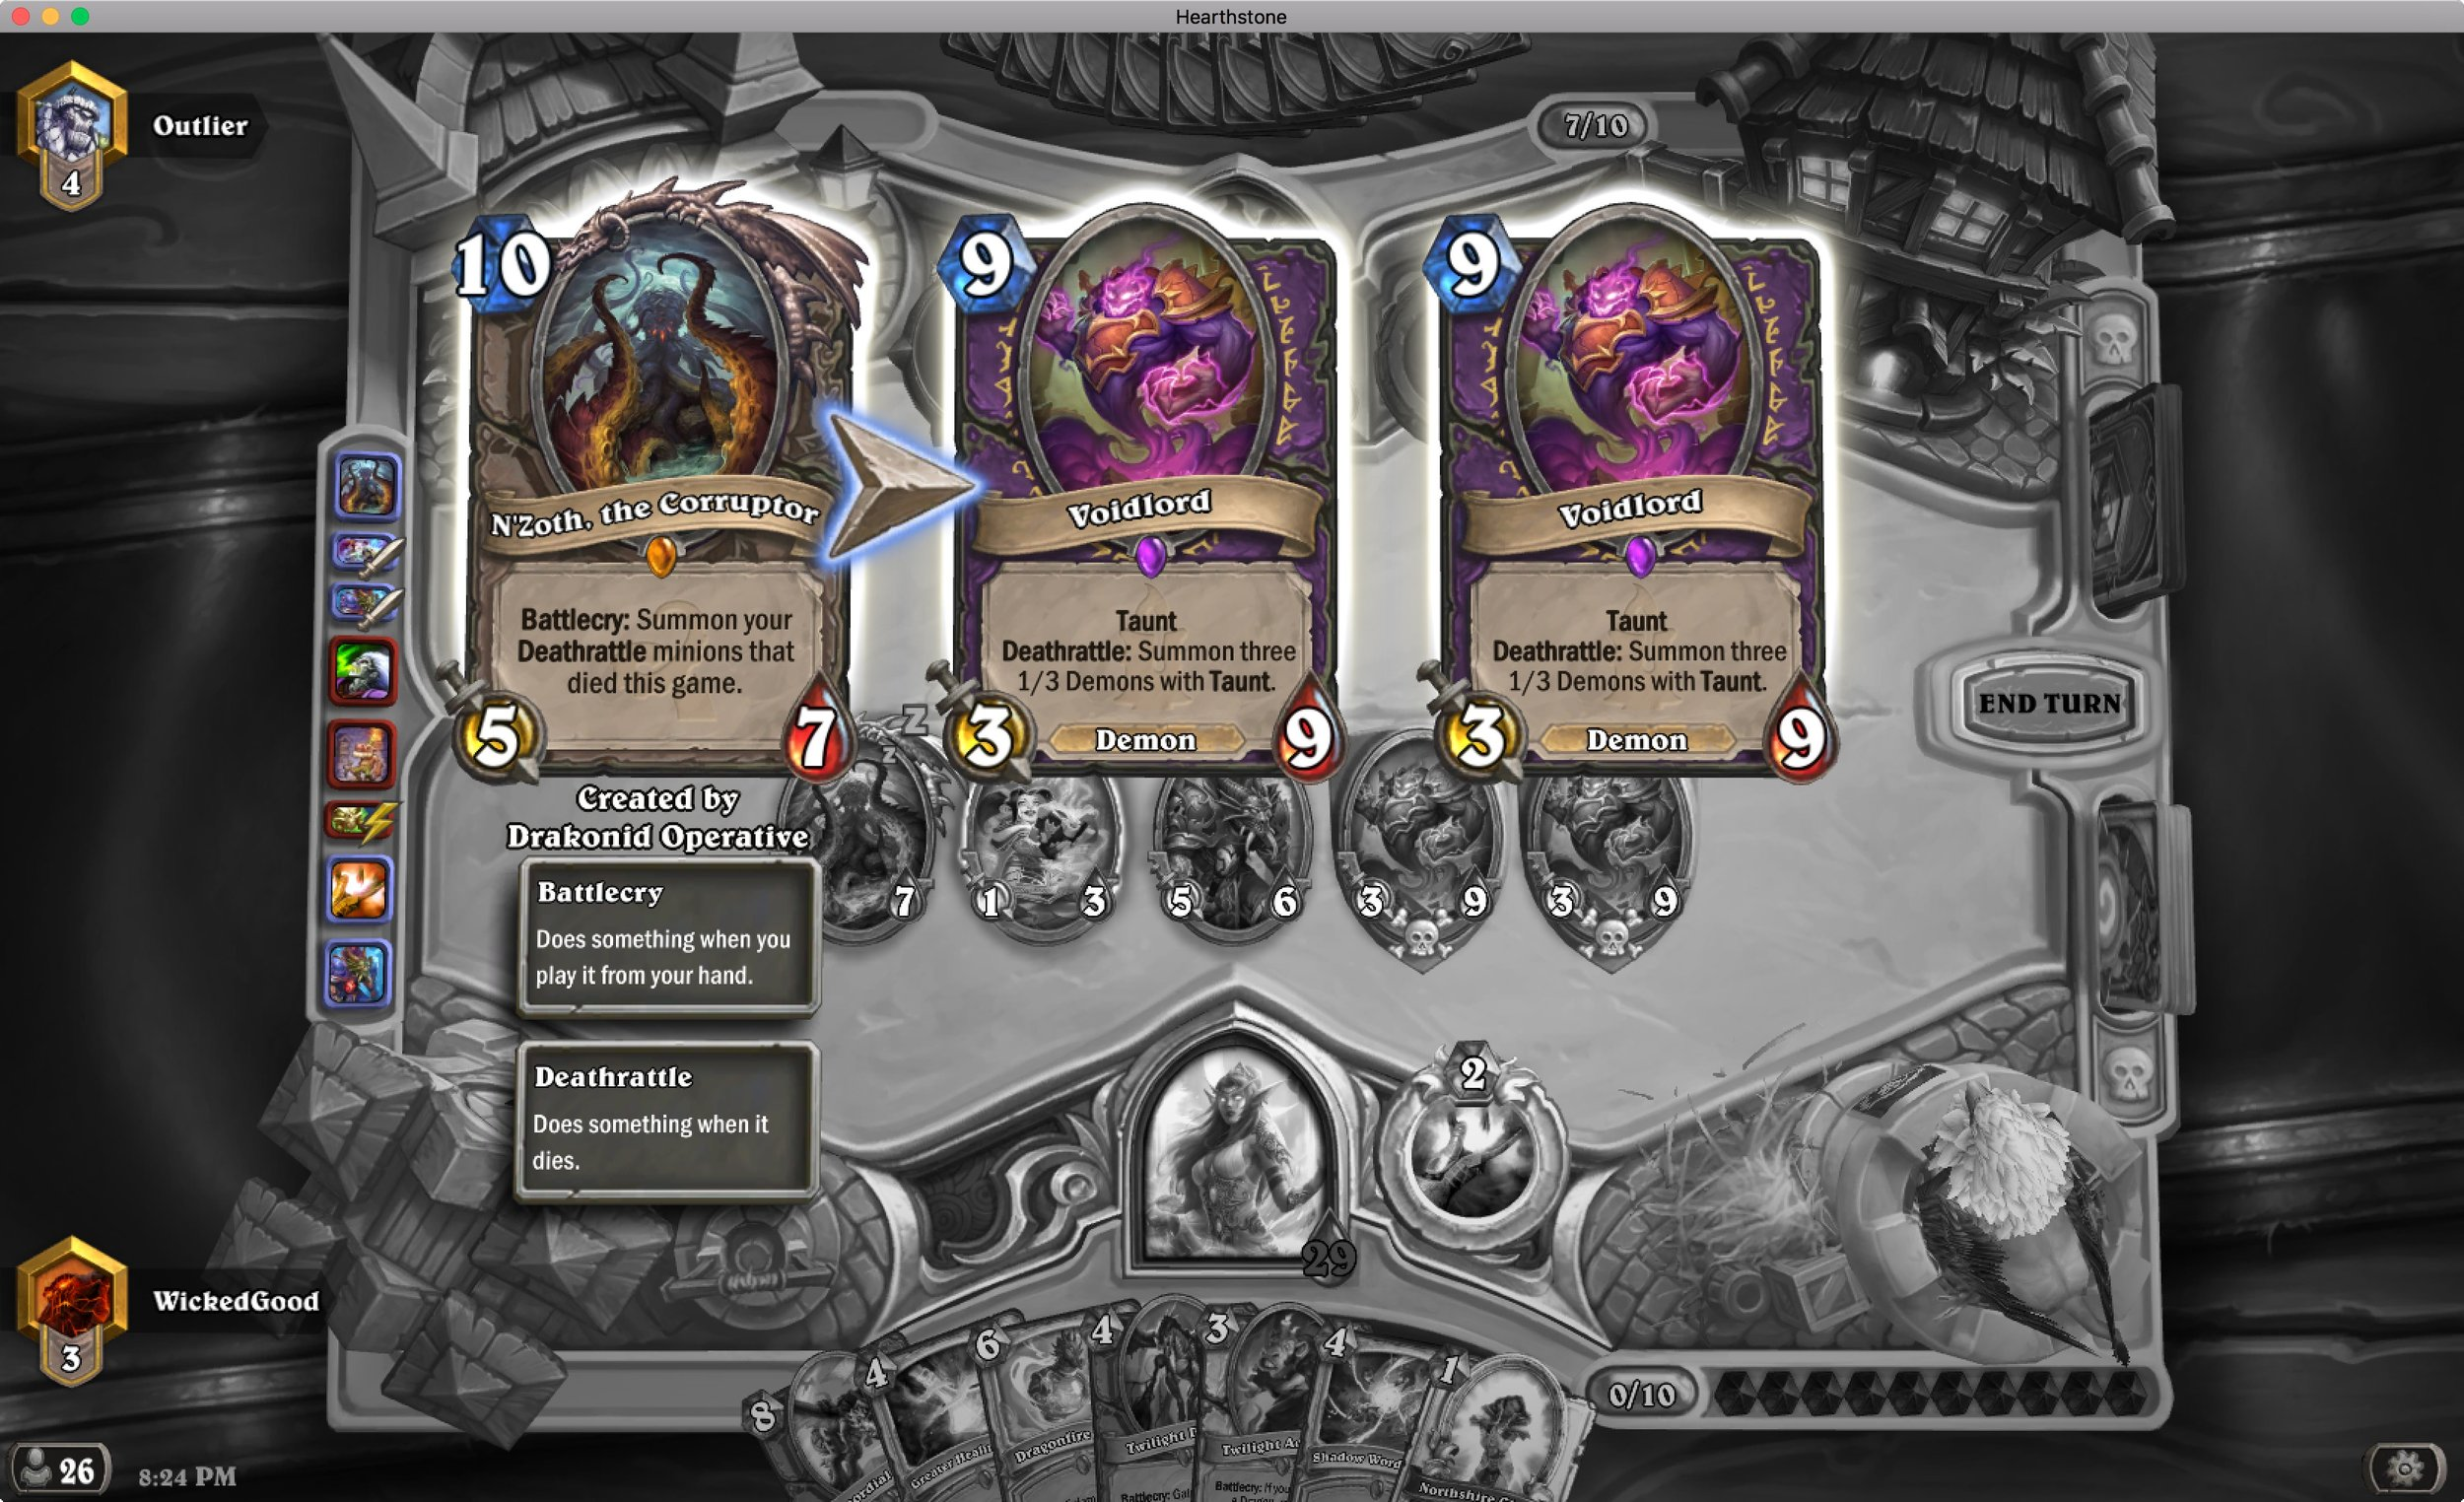 That's a nice N'zoth you have there...